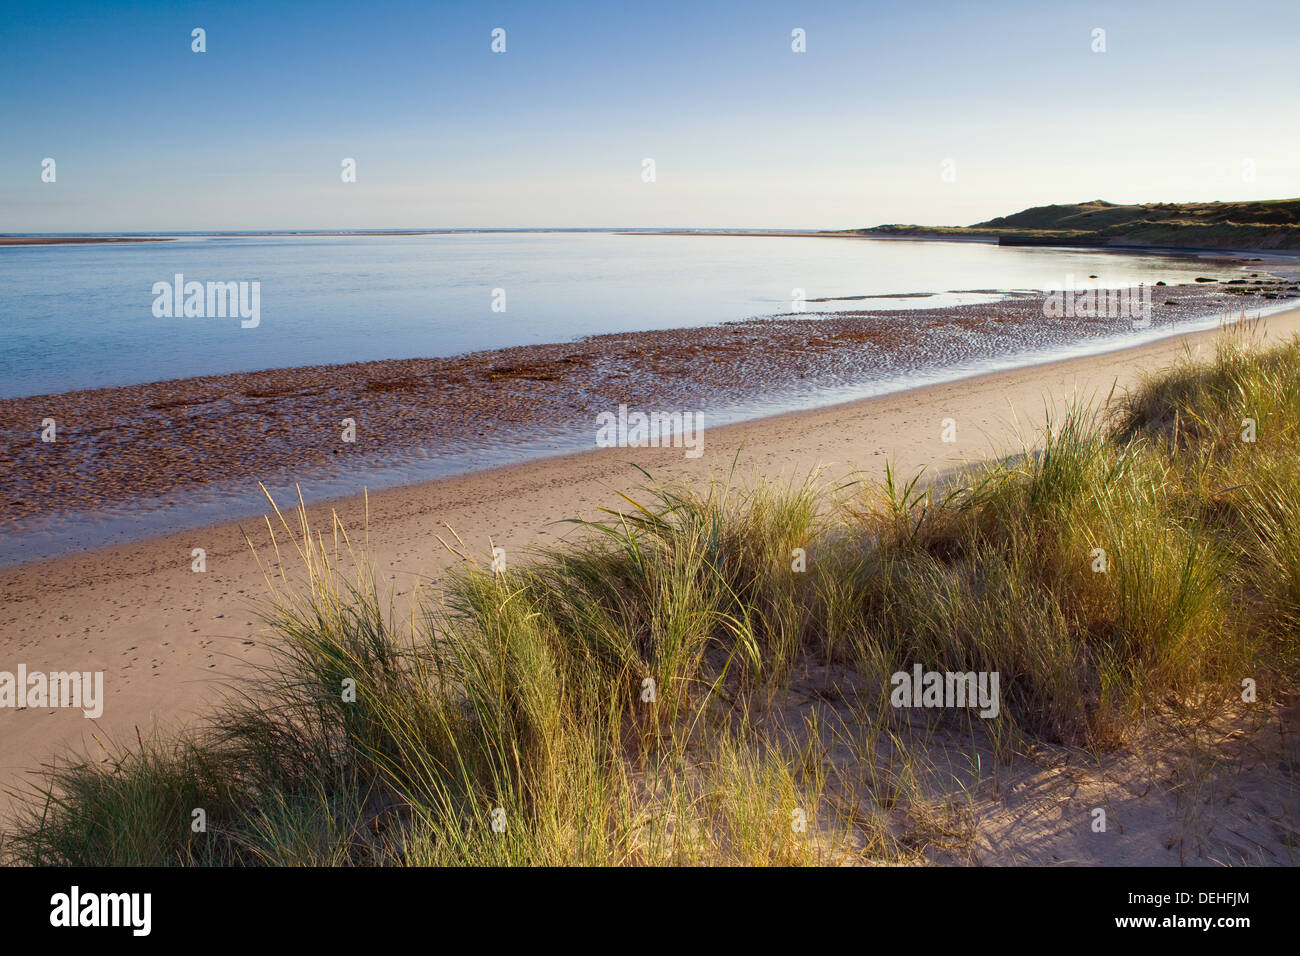 Early morning at Budle Bay on the Northumberland coast near